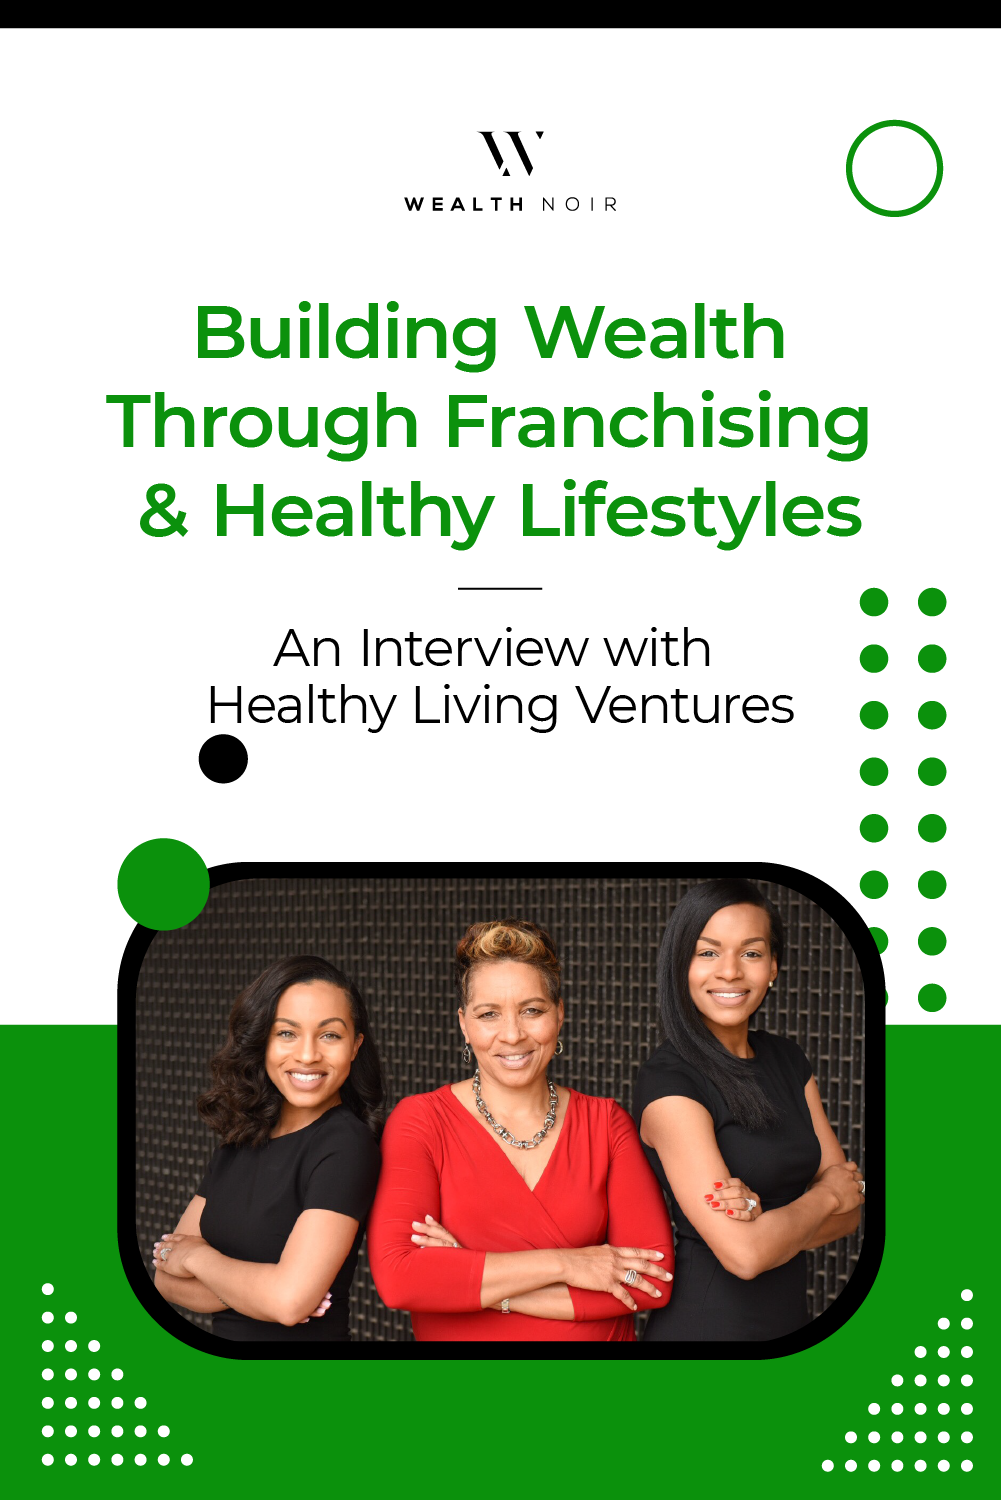 Building Wealth Through Franchising and Healthy Lifestyles: An Interview with Healthy Living Ventures